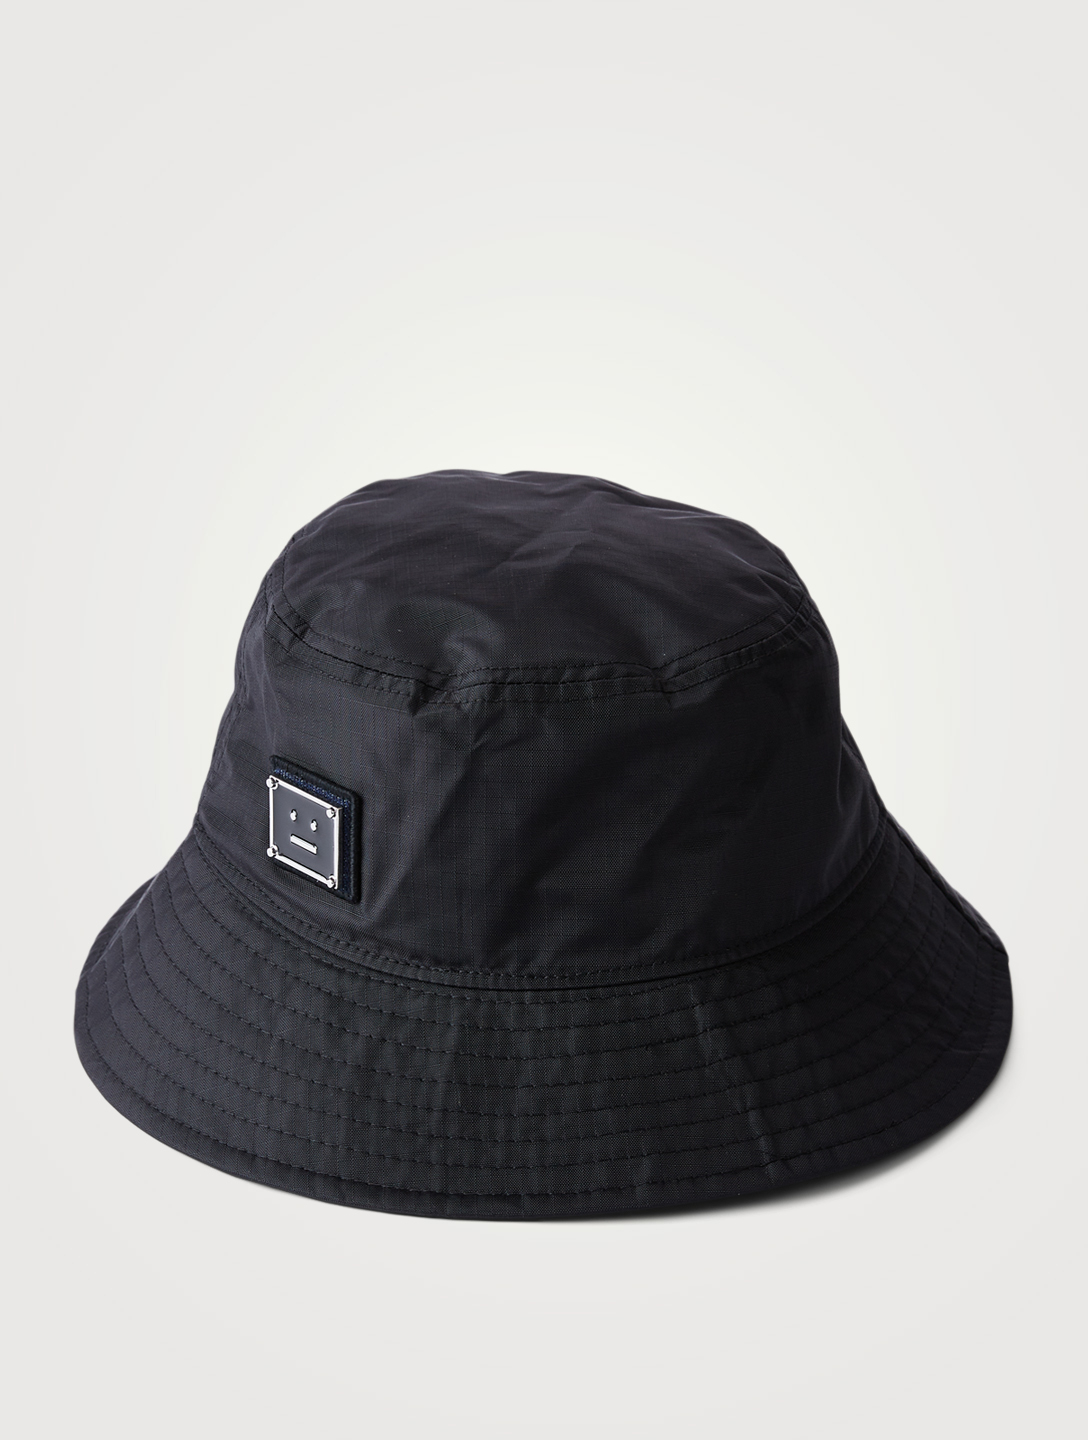 ACNE STUDIOS Face Patch Bucket Hat Women's Black